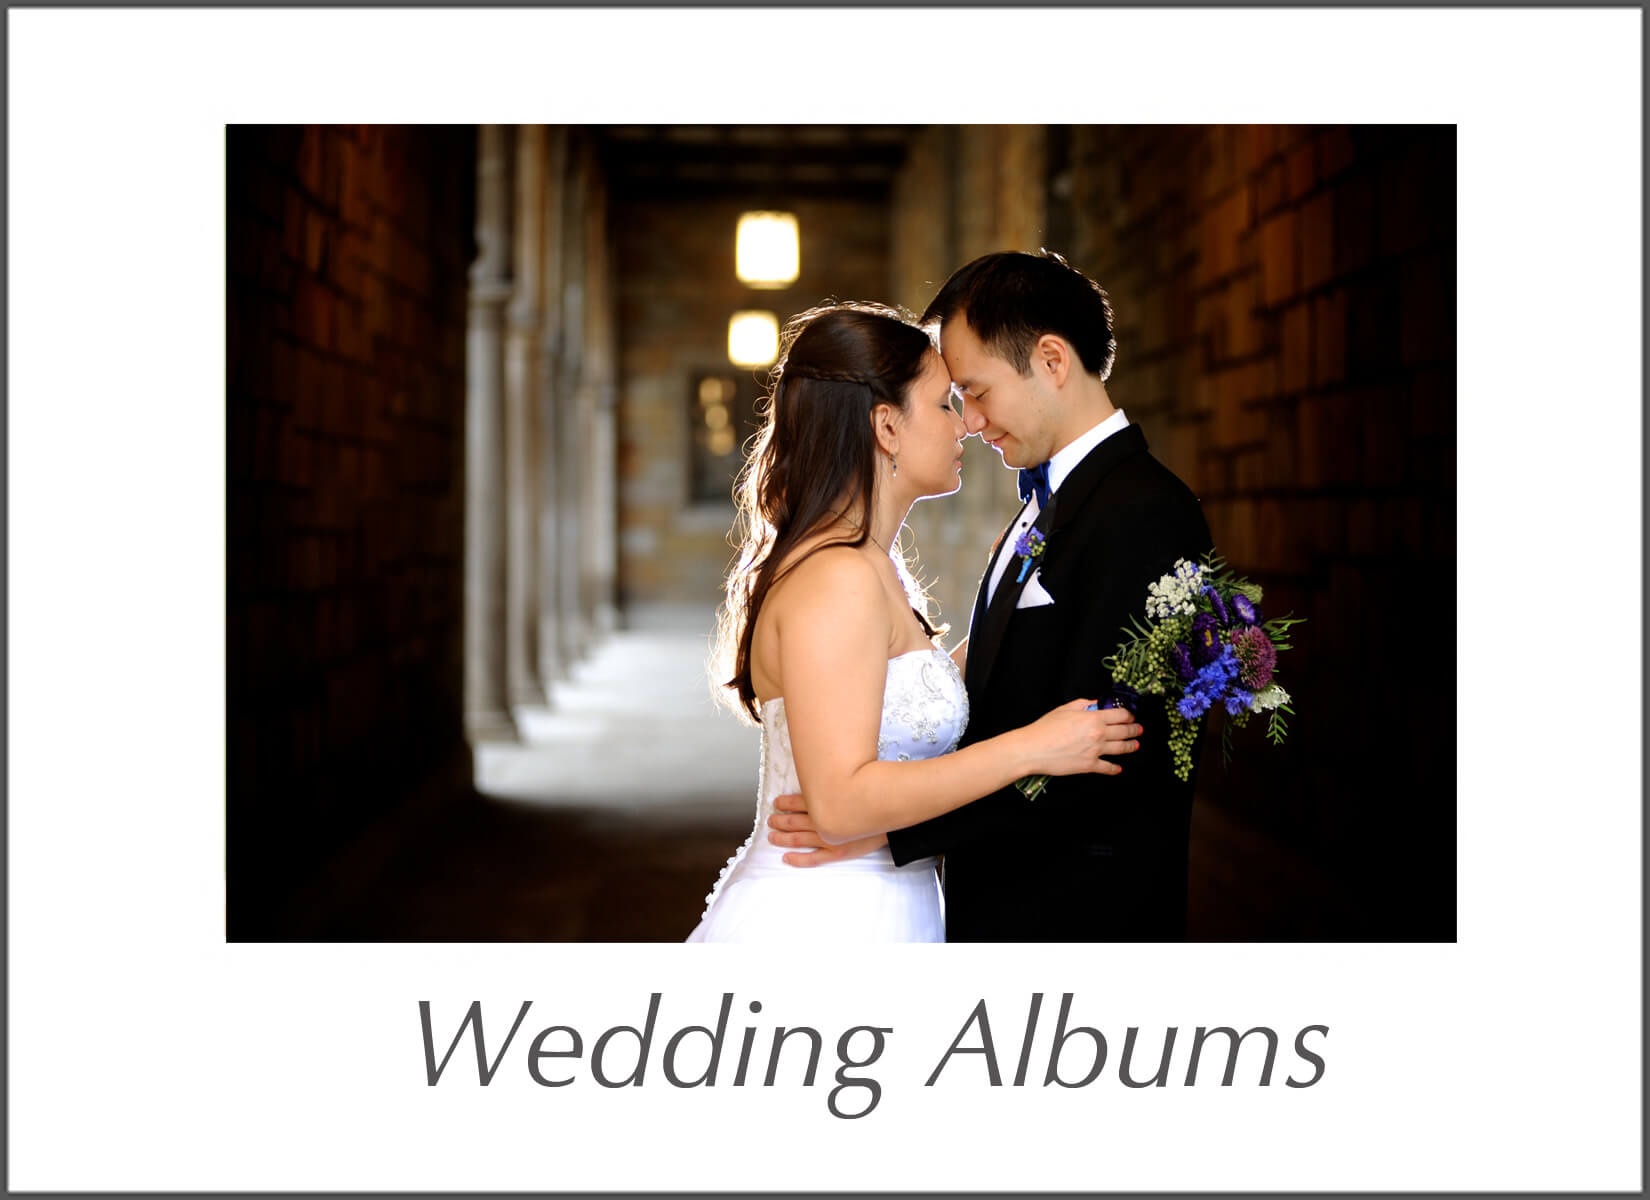 Michigan wedding Photographer offers several different large wedding albums including a 14 x 11 inch flush mount photo album.